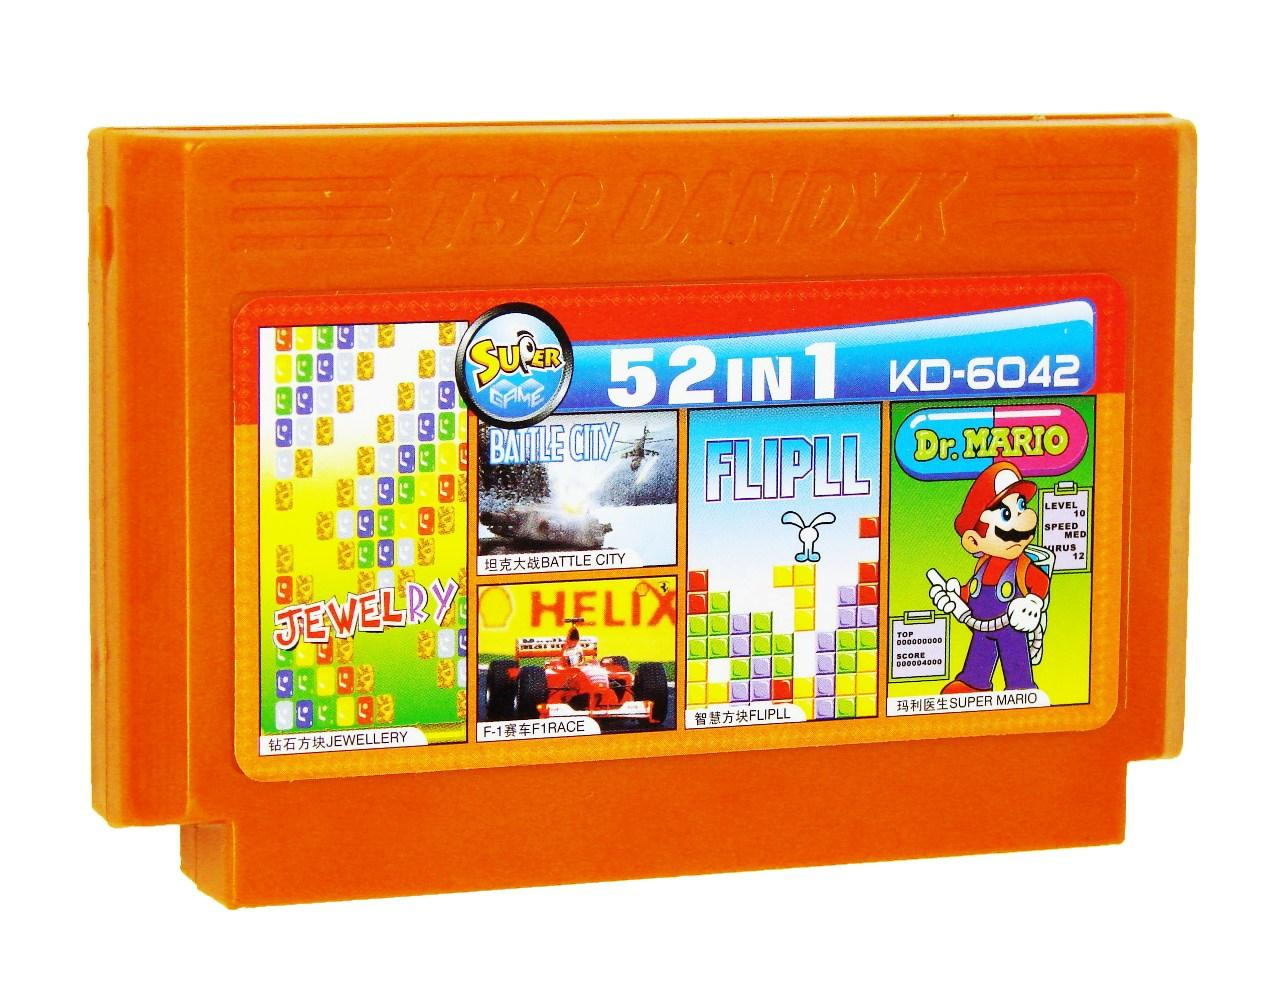 KD 6042 52 in 1 (Dendy), Jewellry, Battle City, F1 Race, Flipll, Super Mario